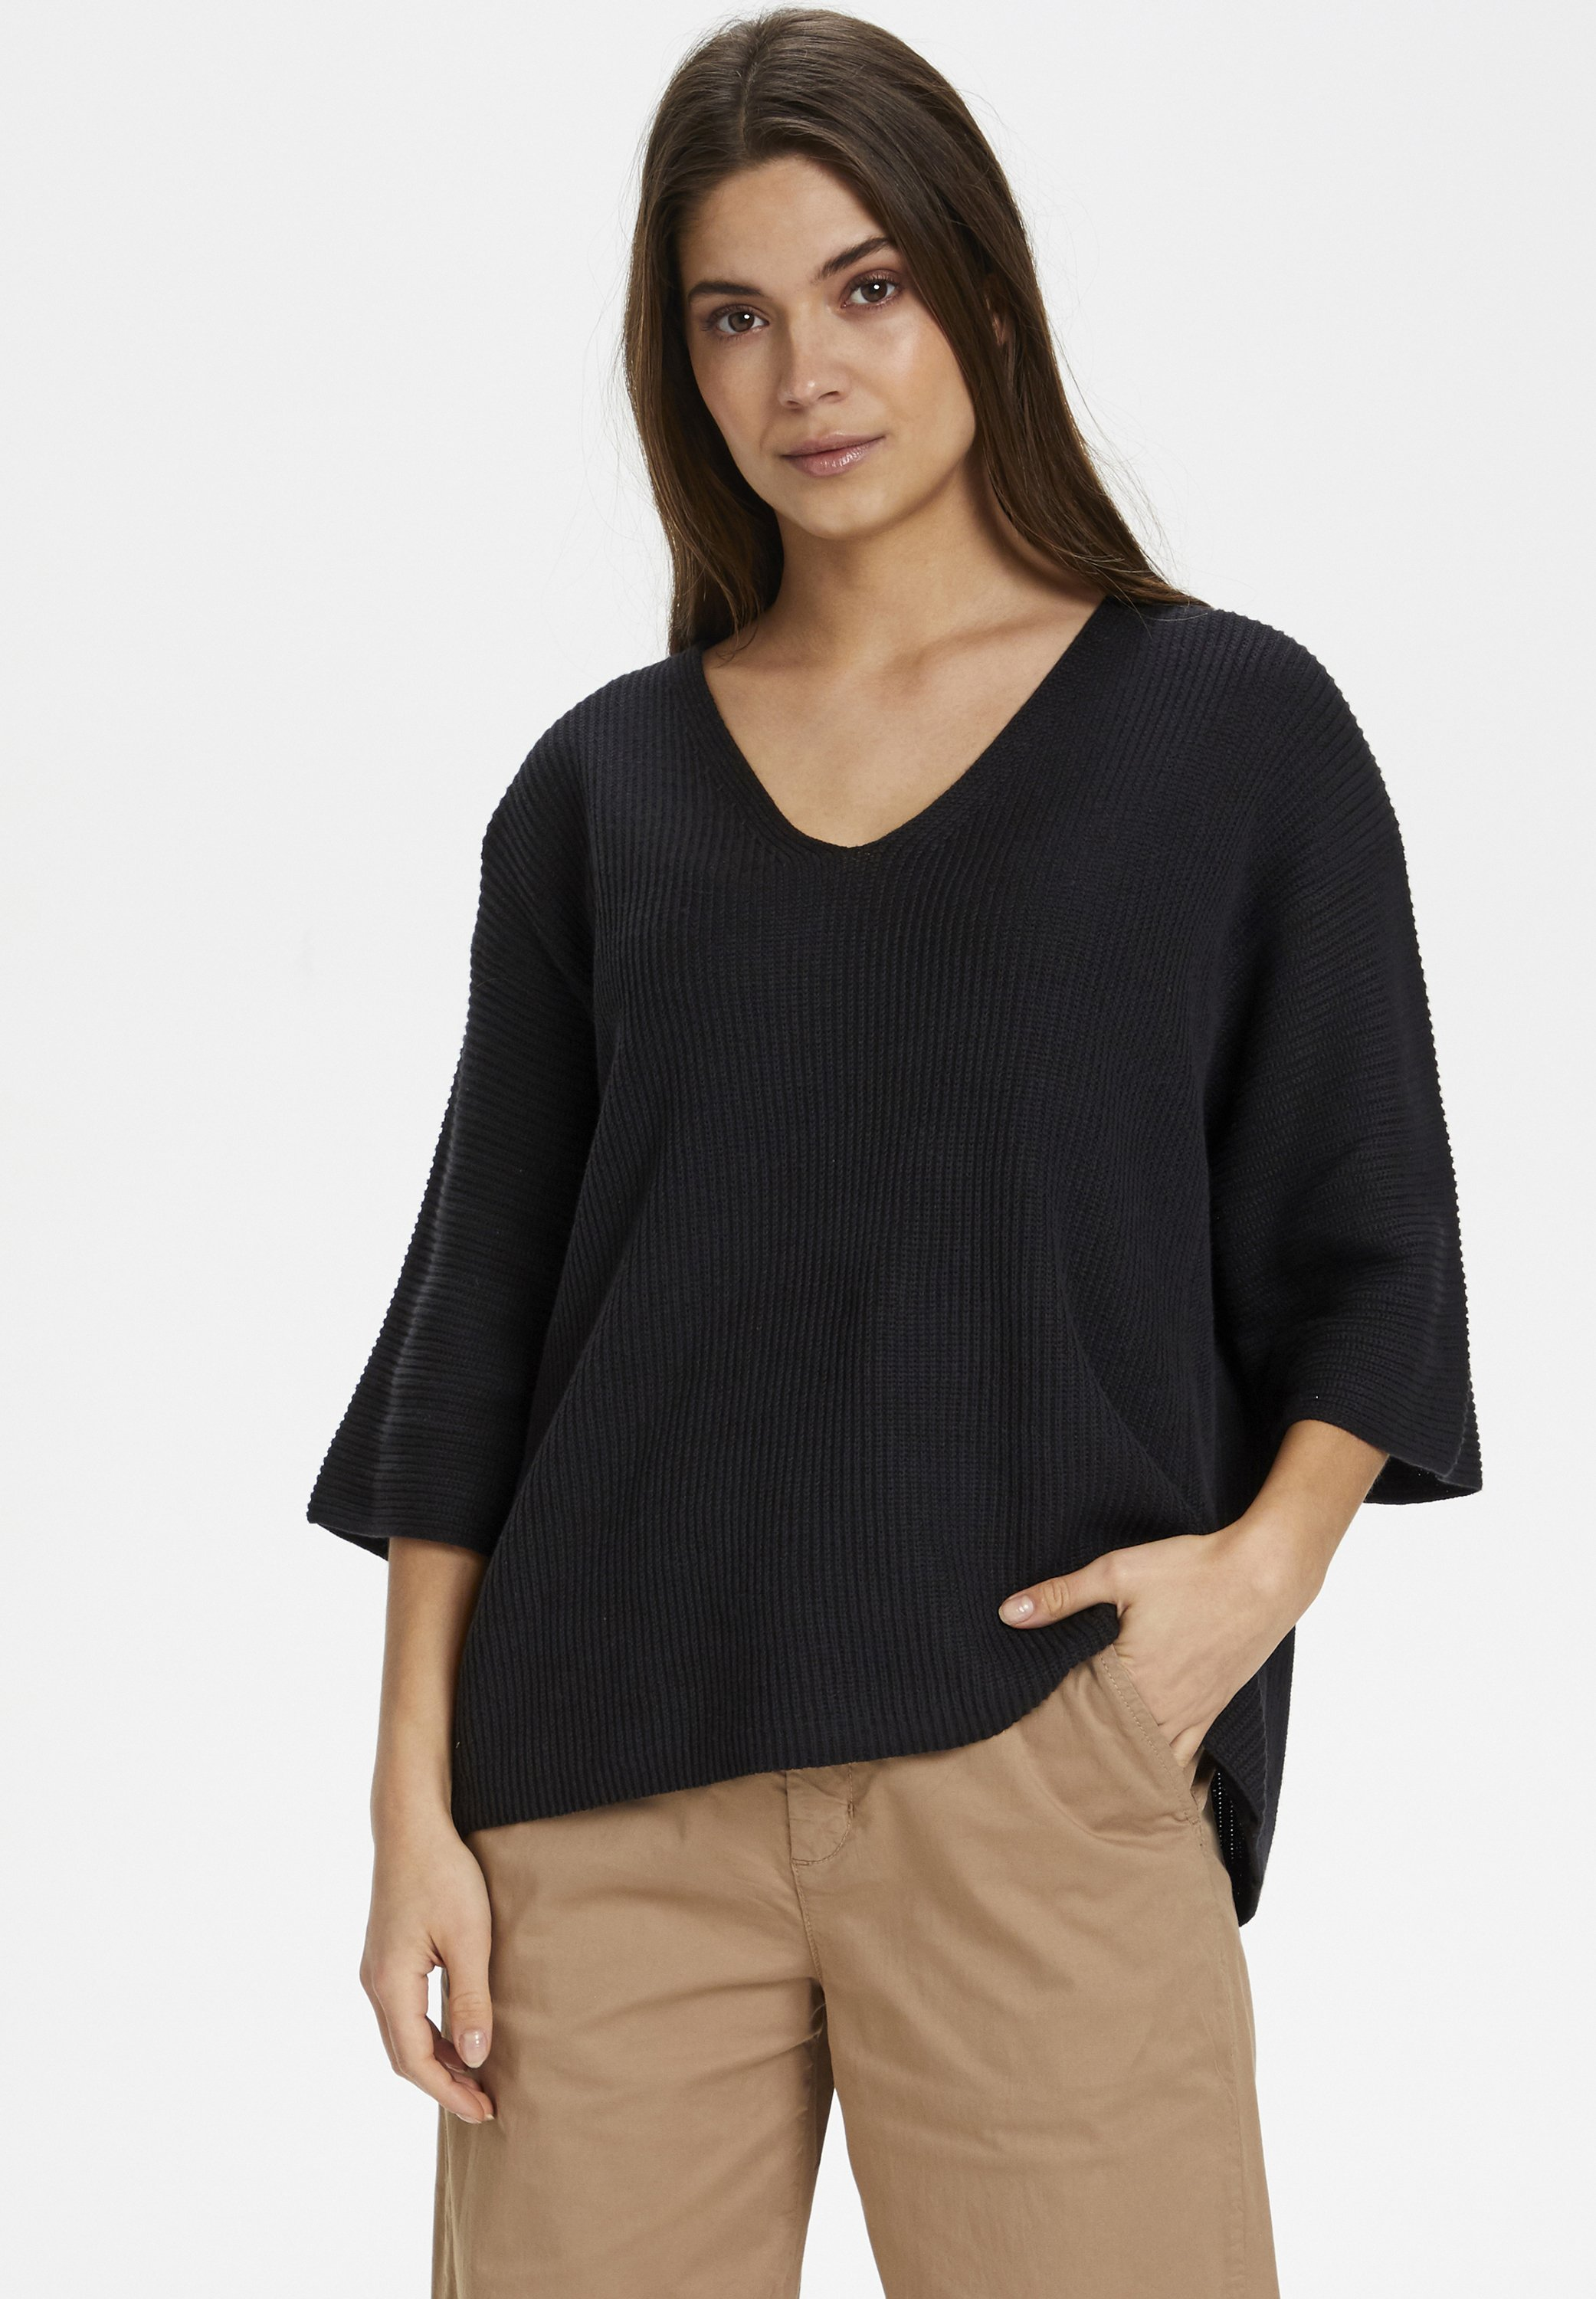 Part Two Maglione - Black BZ8Ay